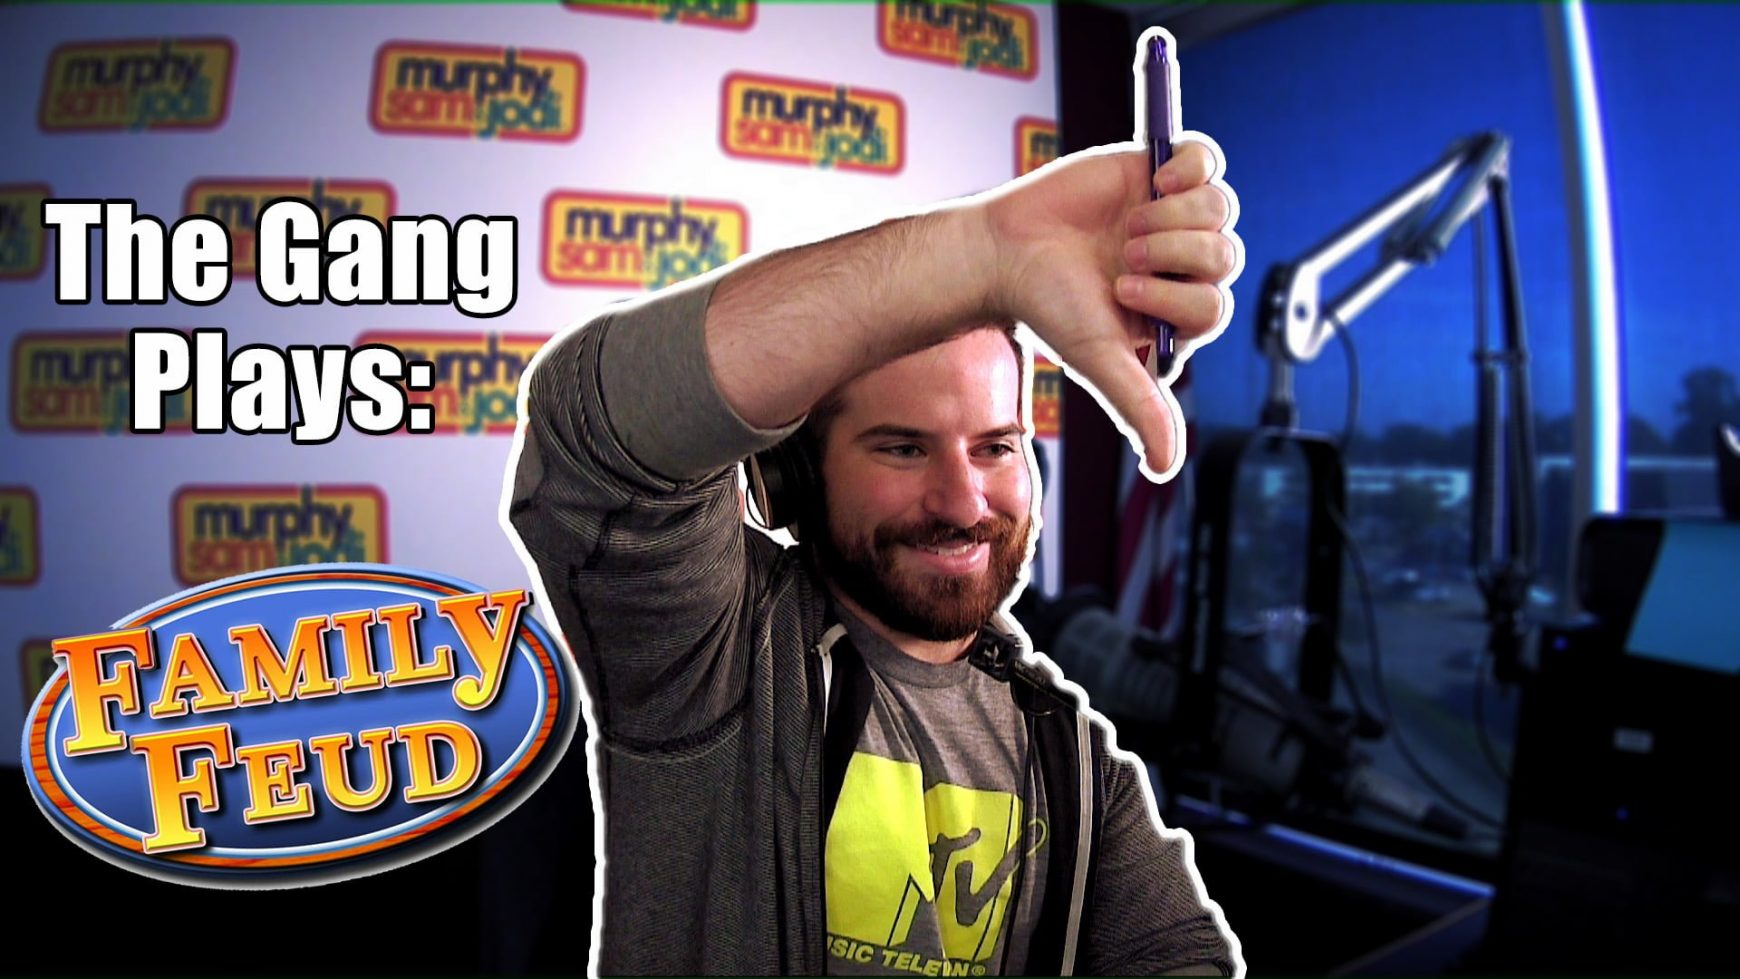 WATCH: The Gang Plays Family Feud